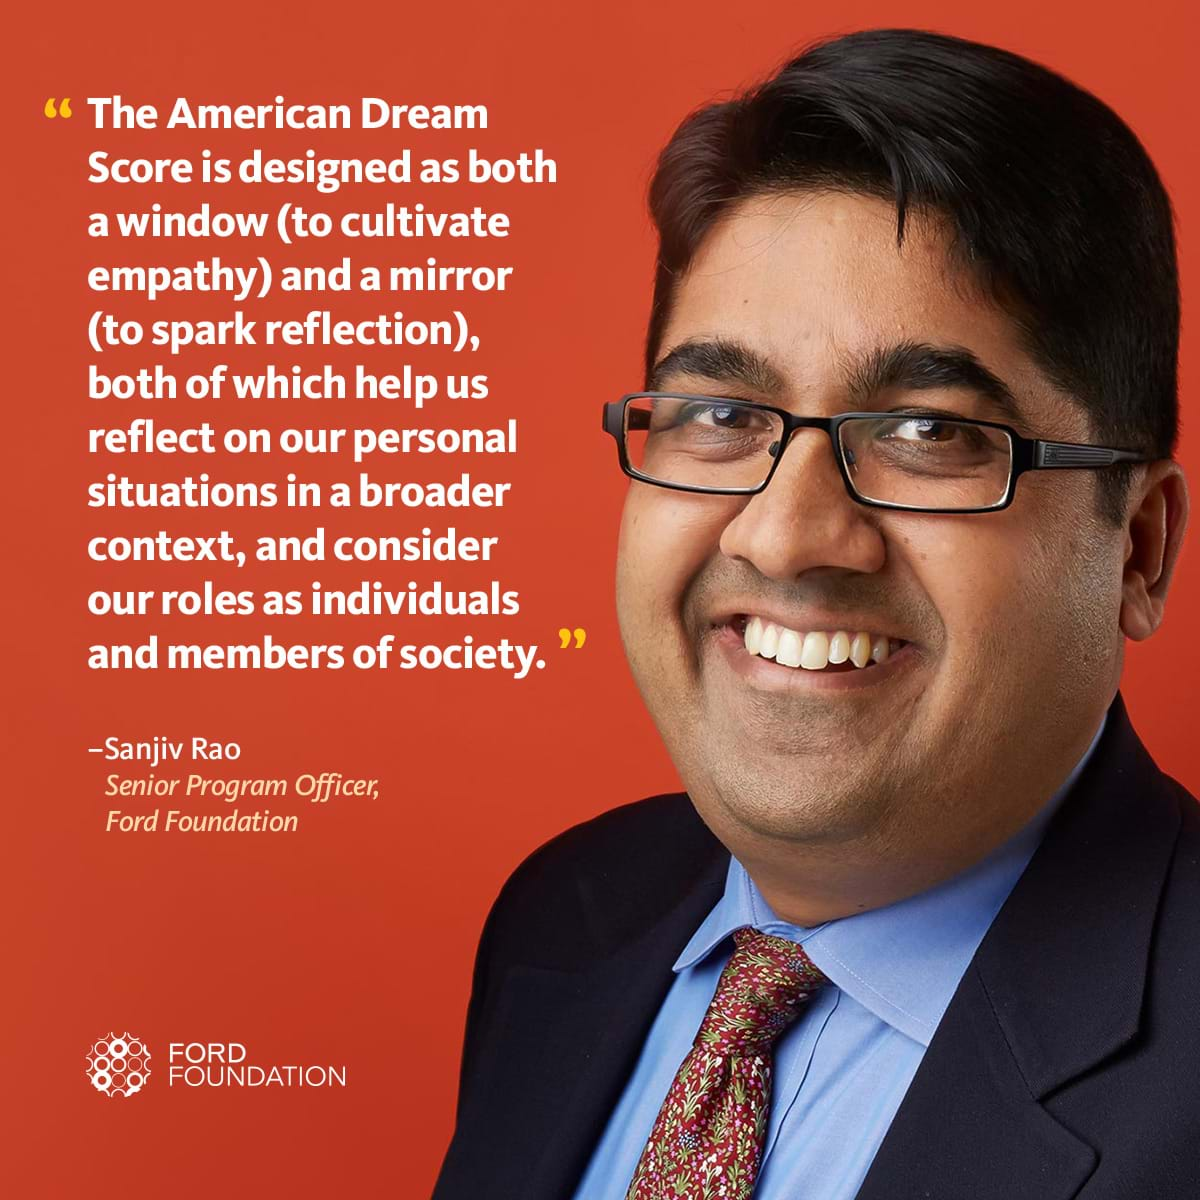 Sanjiv Rao reflects on his American Dream Score